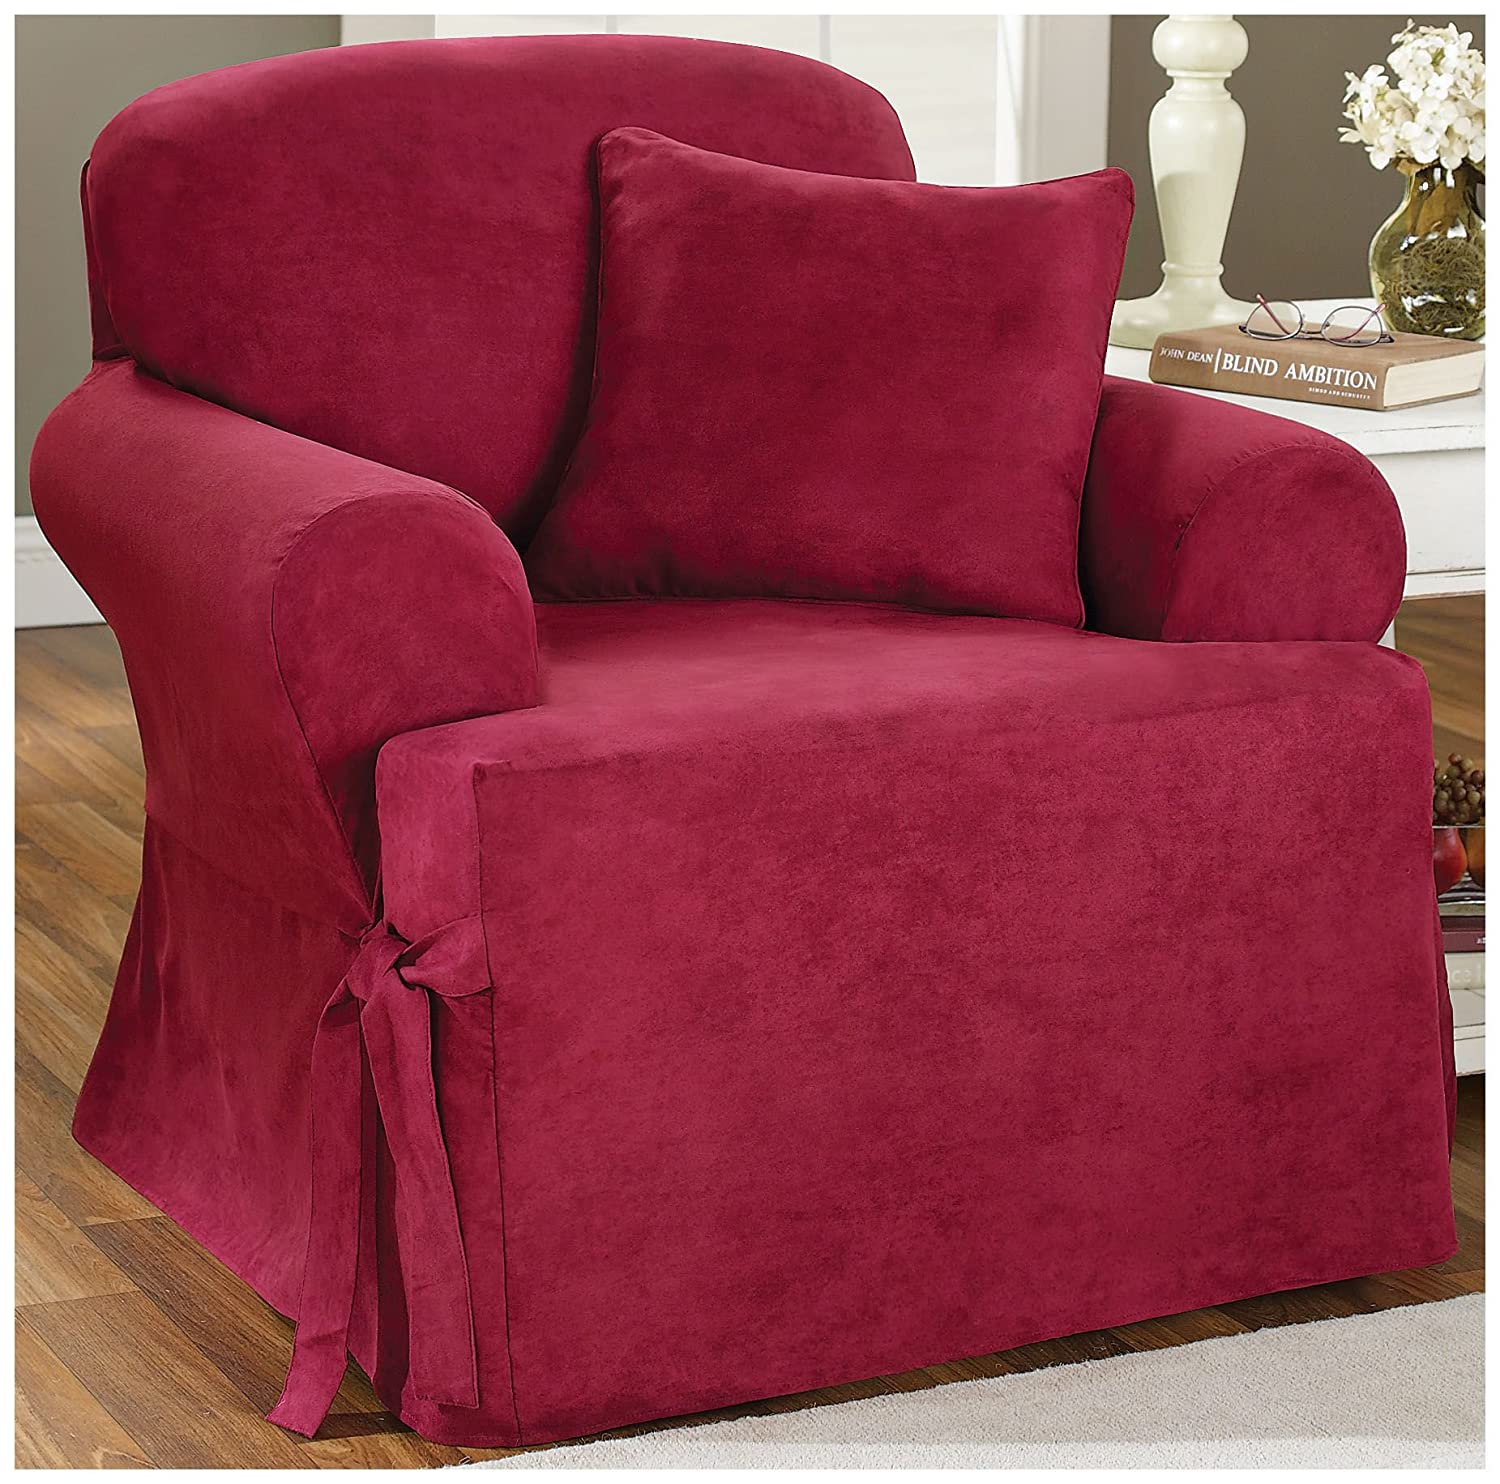 Amazon Sure Fit Soft Suede T Cushion Chair Slipcover